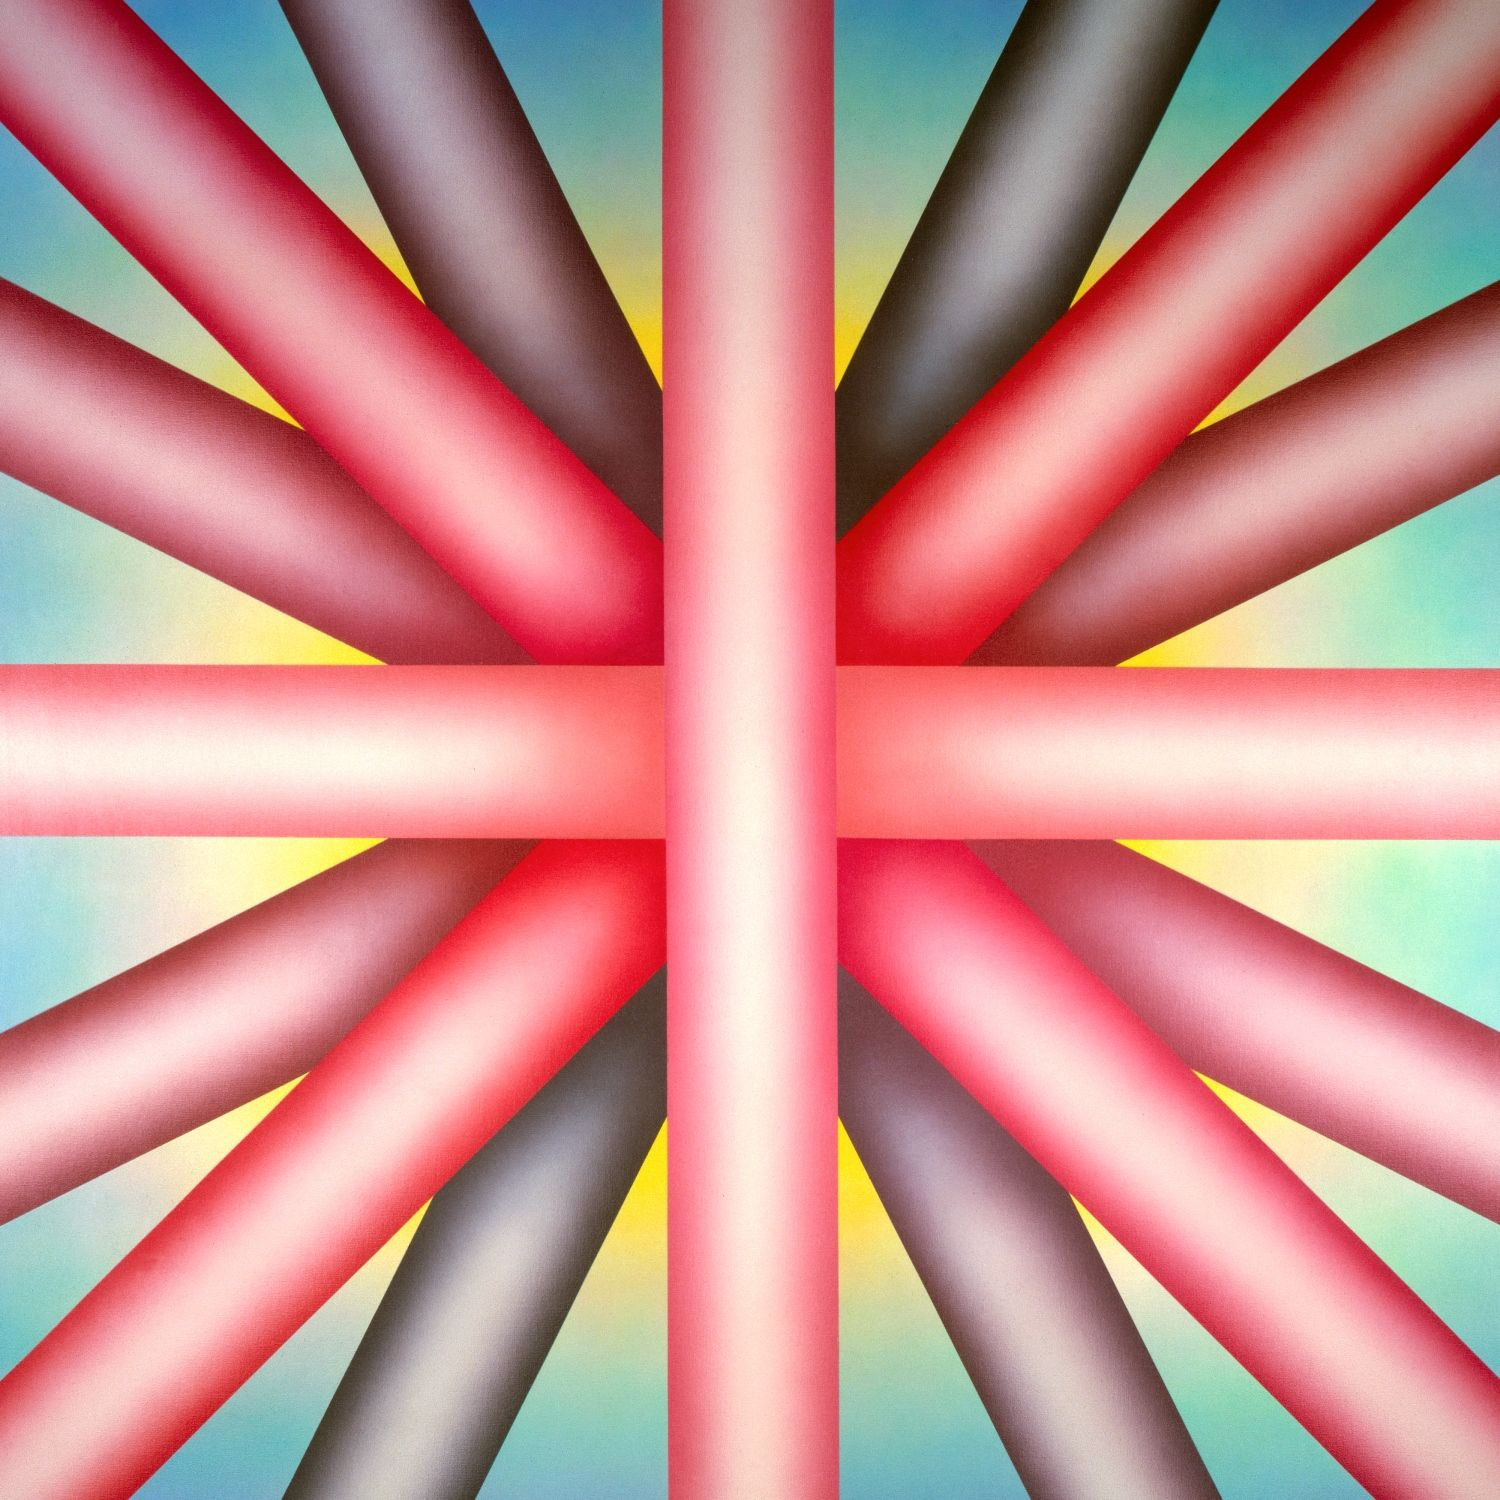 <p>Judy Chicago (American, b. 1939). <i>Heaven is for White Men Only</i>, 1973. Sprayed acrylic on canvas, 80 x 80 in. (203.2 x 203.2 cm). New Orleans Museum of Art, Gift of the Frederick R. Weisman Art Foundation, 93.12. © Judy Chicago. Photo: © Donald Woodman</p>